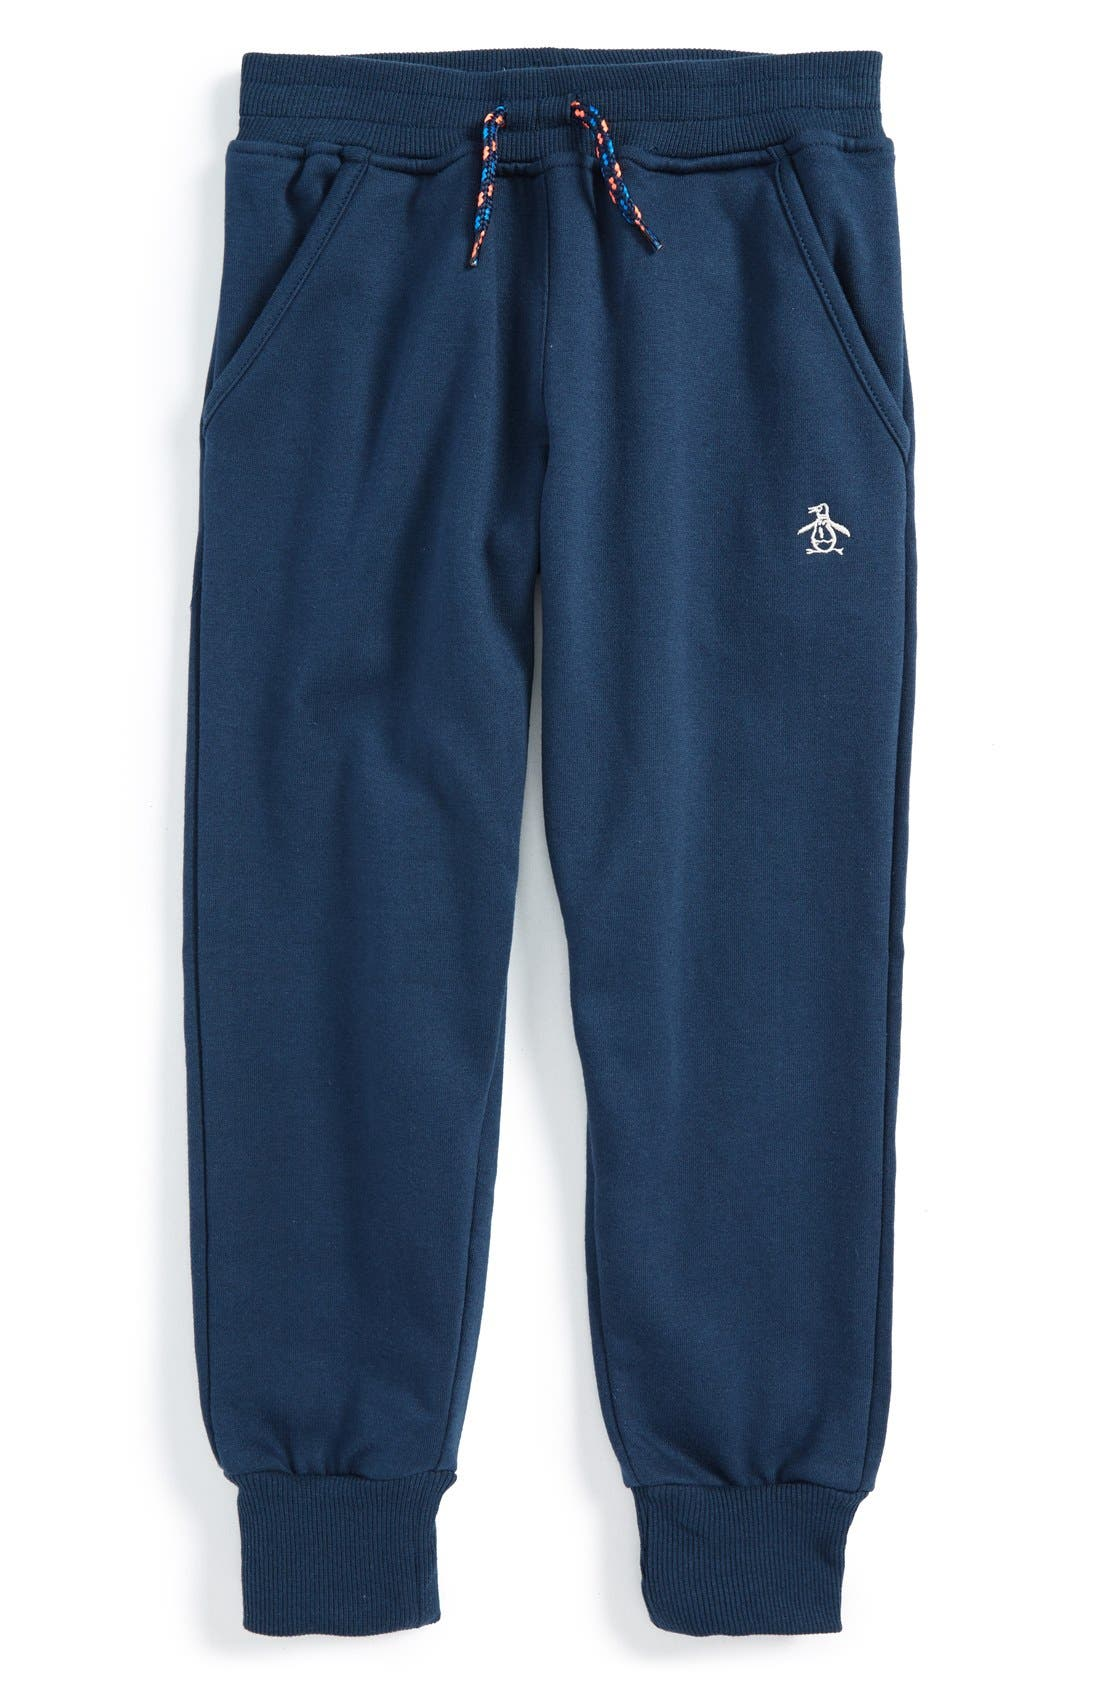 Main Image - Original Penguin Jogger Sweatpants (Little Boys)